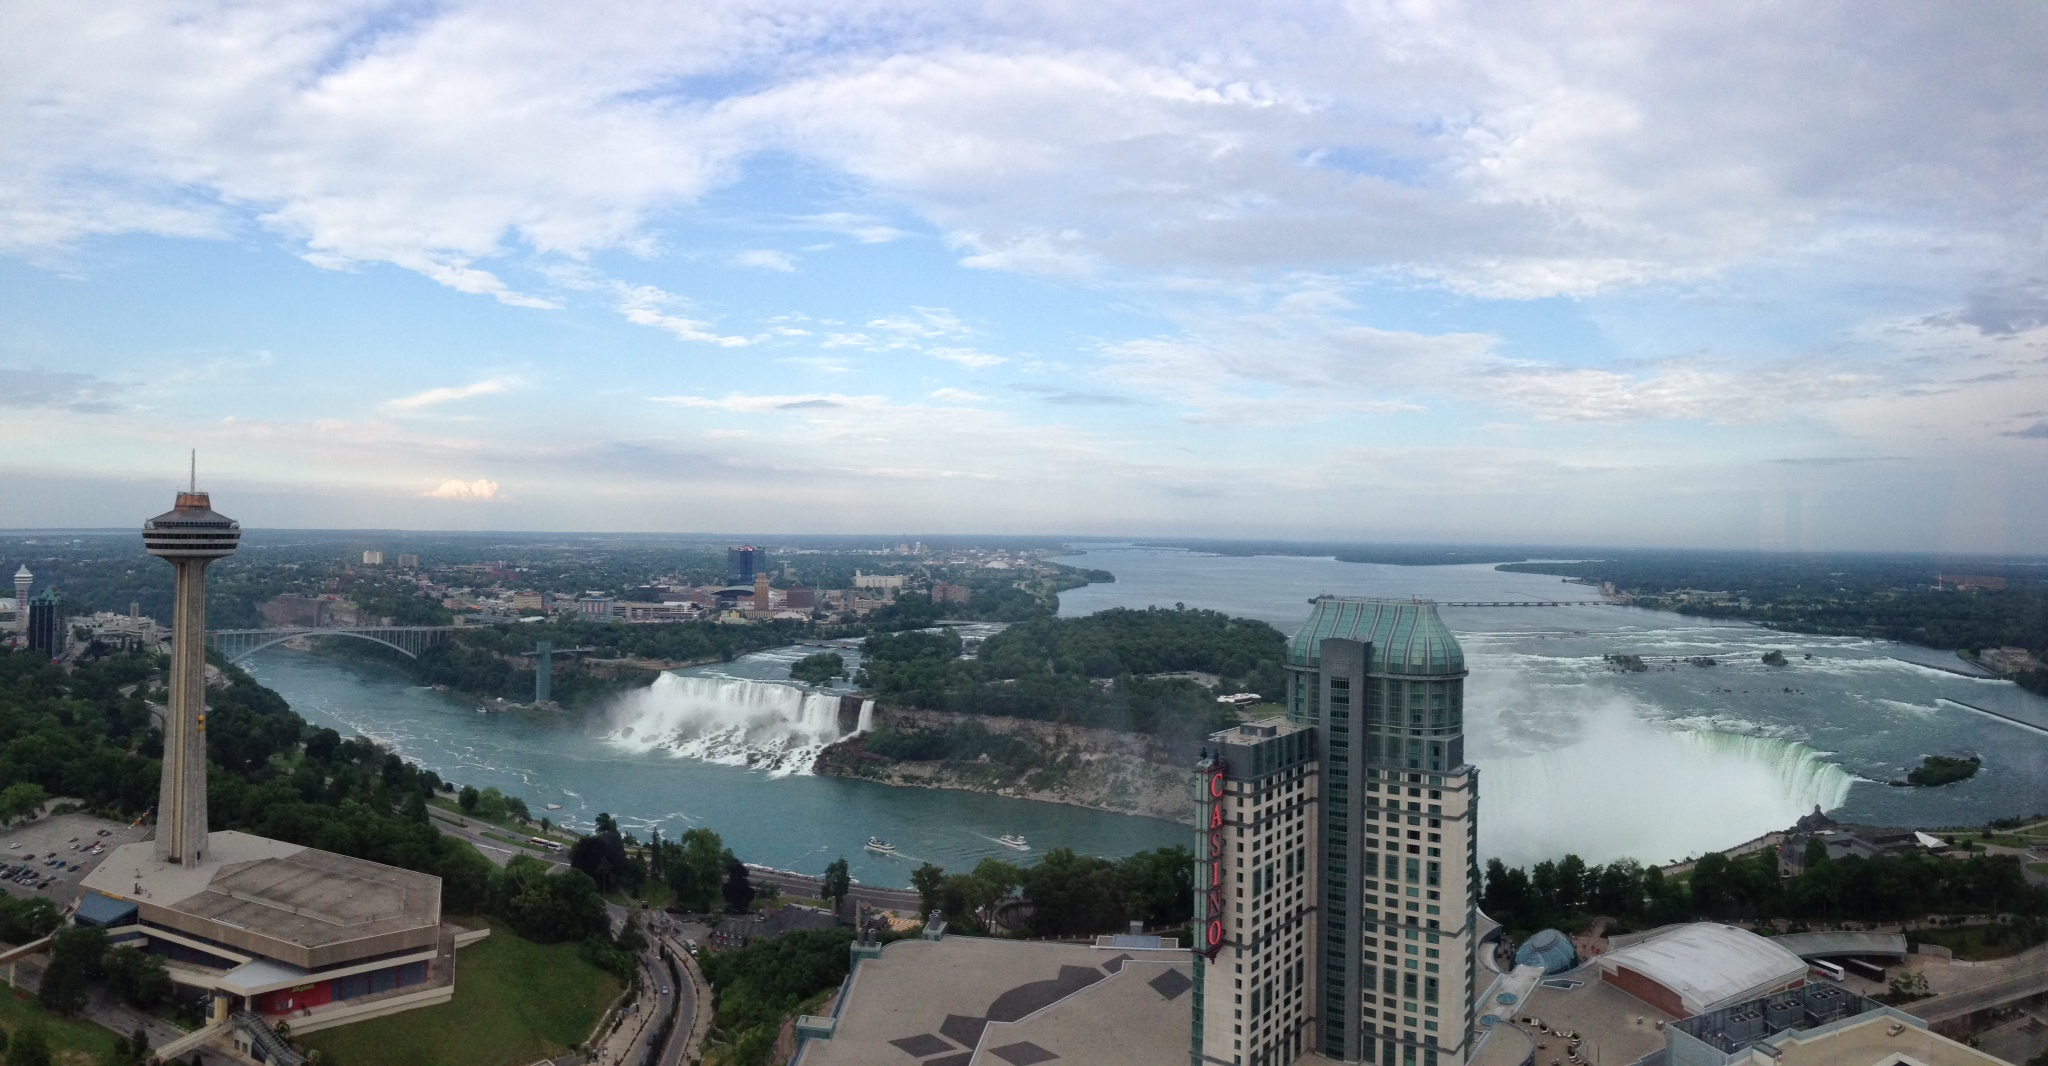 Niagara Falls from our room on the Canadian side